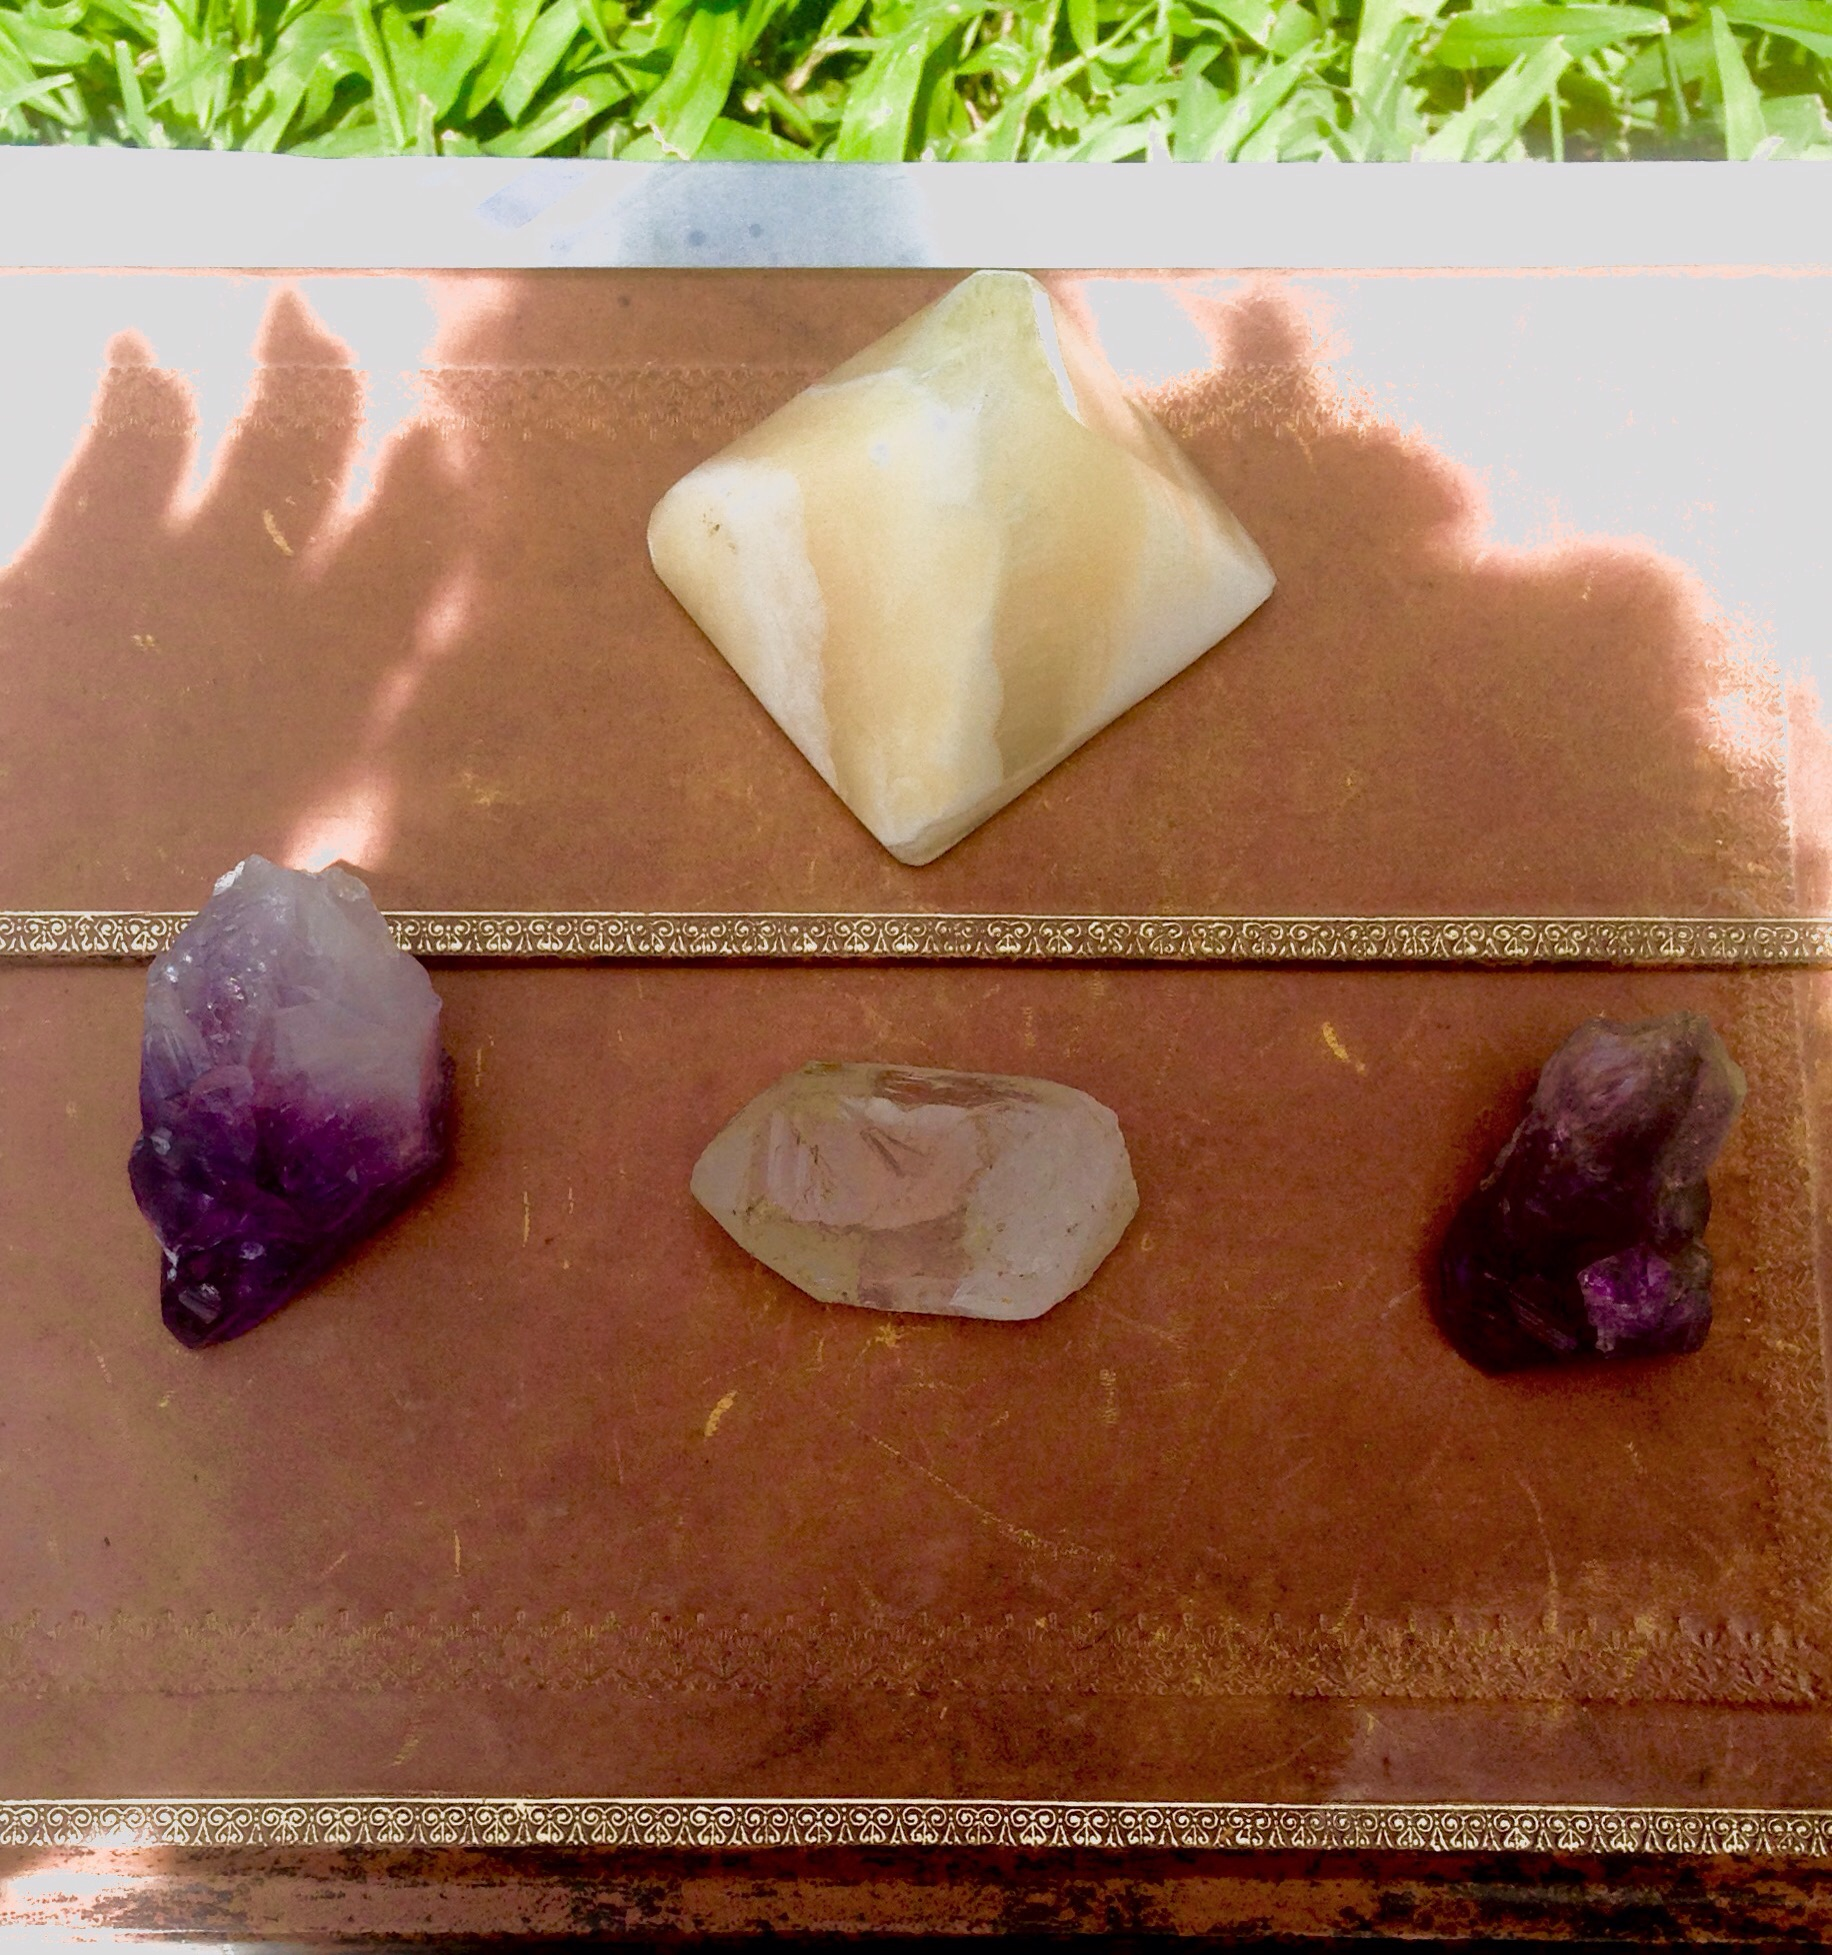 Amethyst Points Amped by Clear Quartz and a Sandstone Pyramid. Charged by the sun and observed by the shadow.